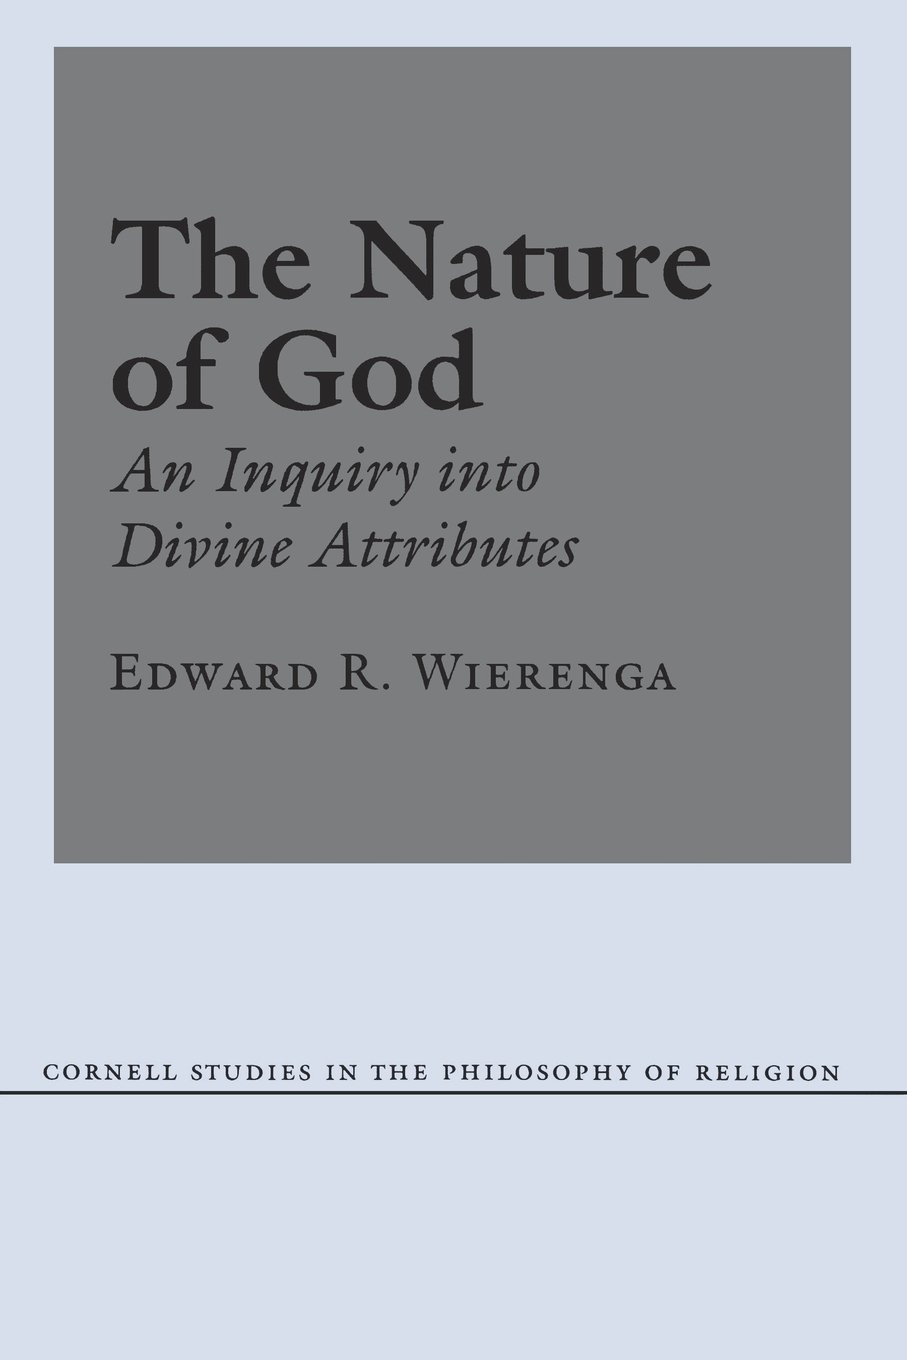 Read Online The Nature of God: An Inquiry into Divine Attributes (Cornell Studies in the Philosophy of Religion) PDF